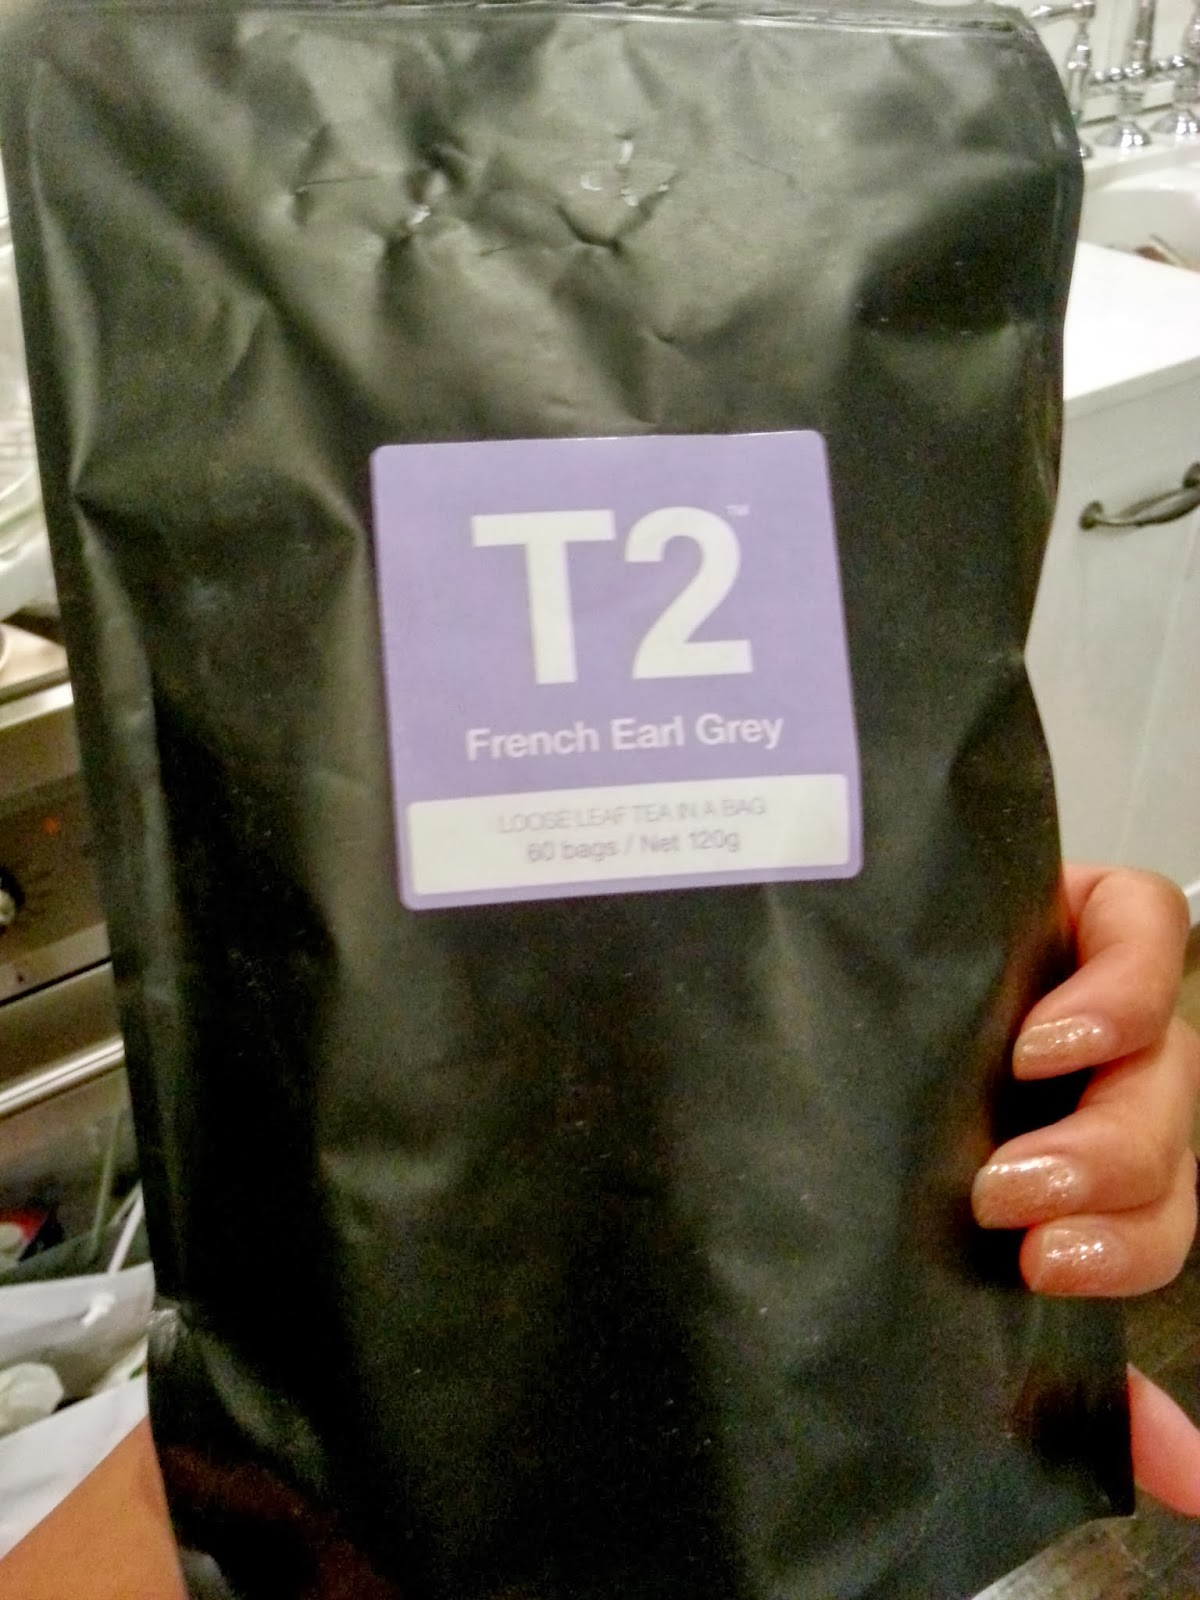 the teamaker t2 instructions